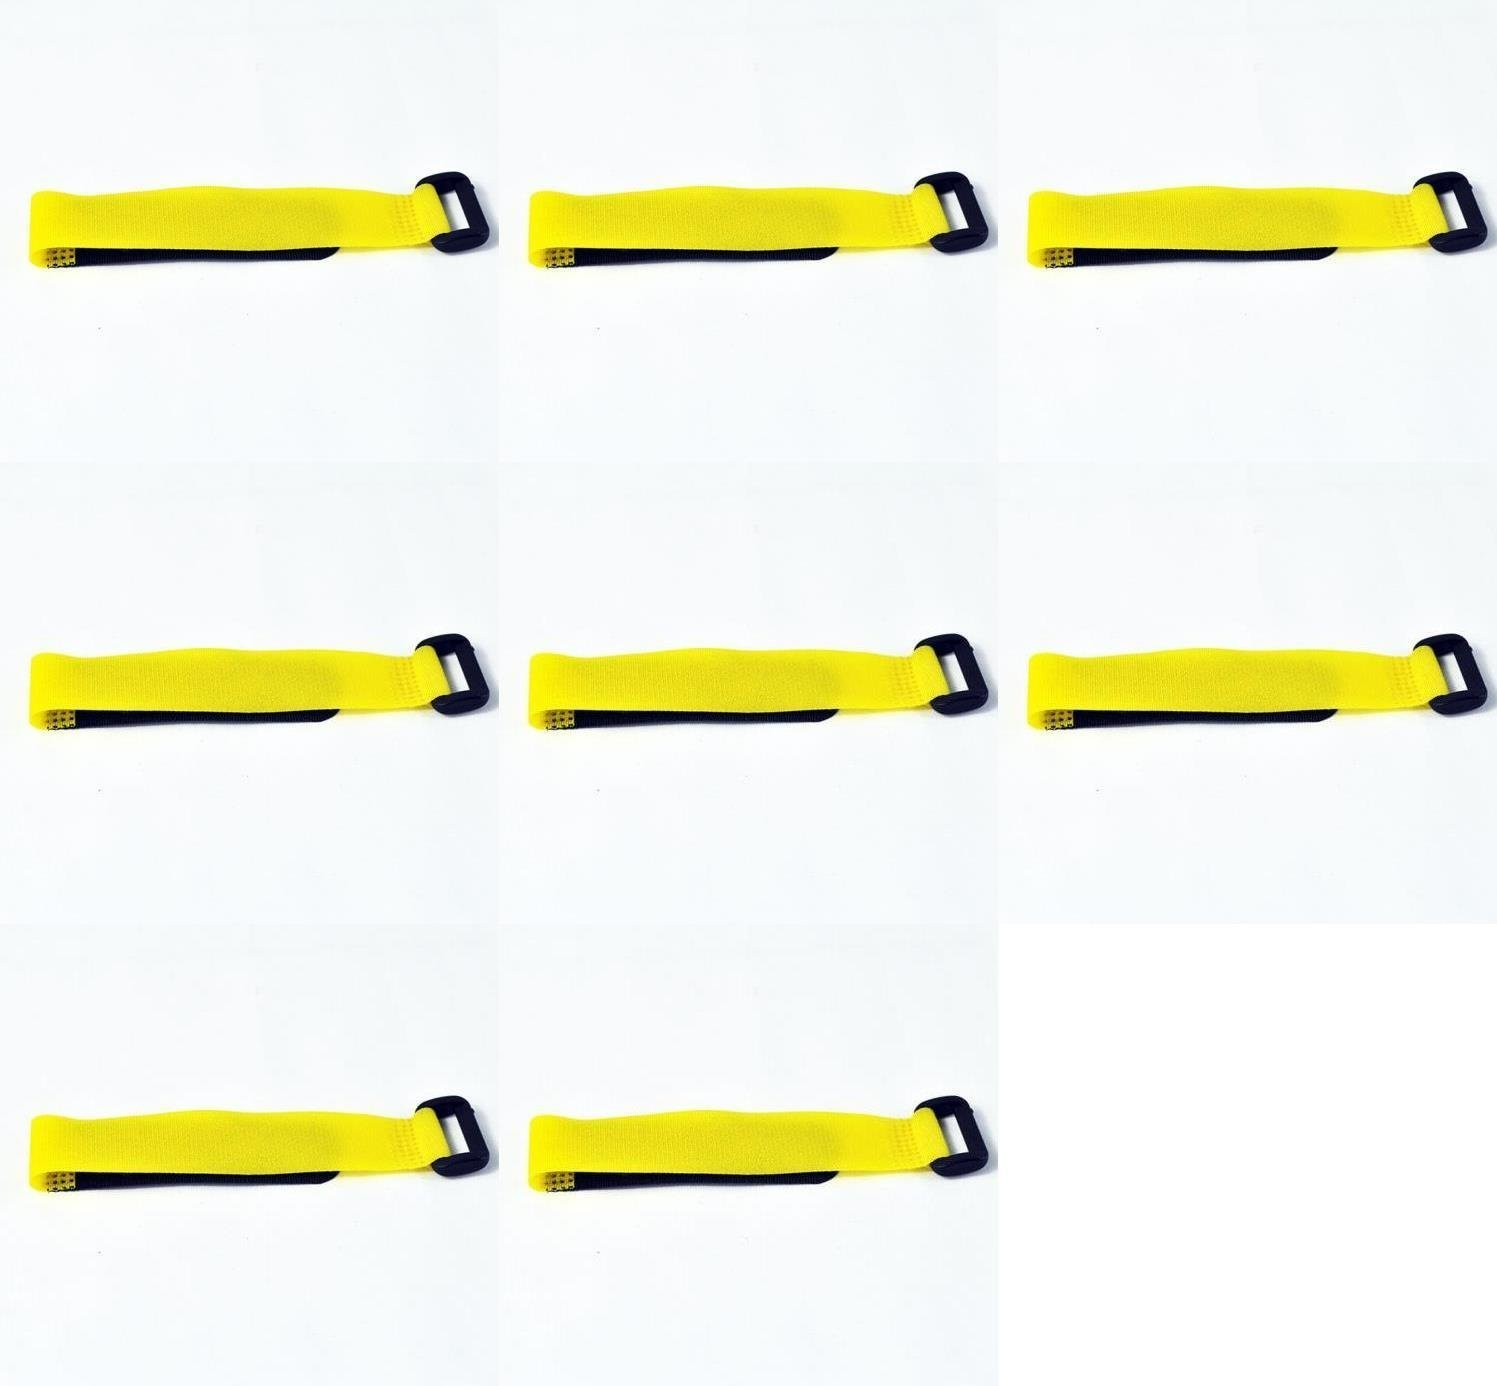 8 x Quantity of Walkera Runner 250 (R) Advanced GPS Quadcopter Drone 20mm Gelb Battery Strap 250-Z-27 Velcro Wrap Quadcopter Drone Part - FAST FROM Orlando, Florida USA!